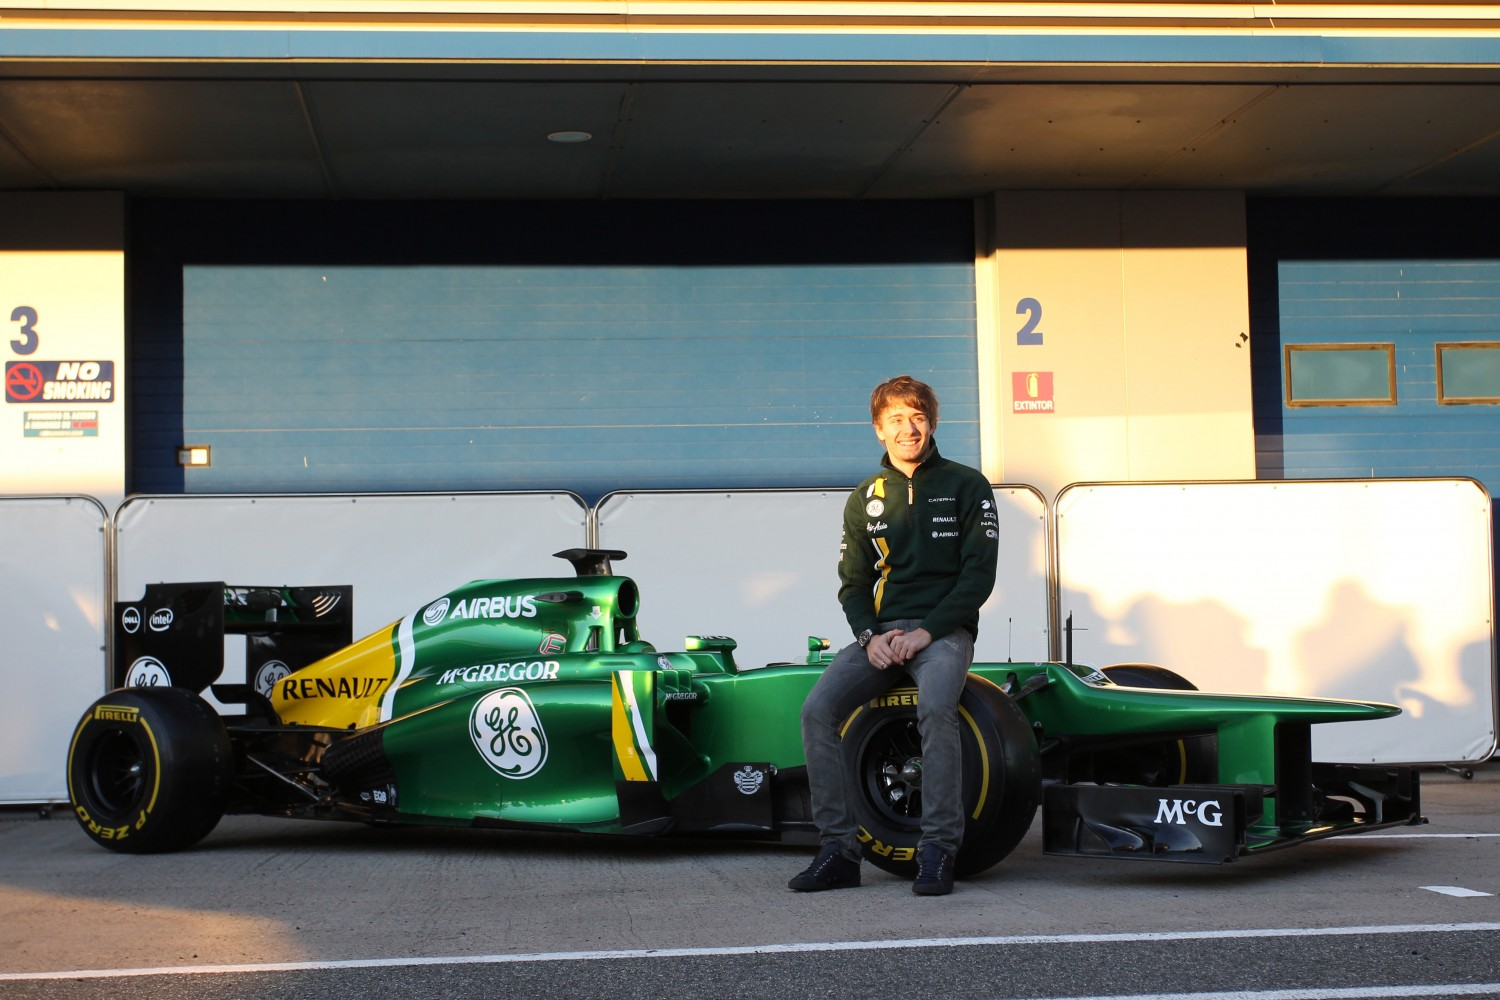 Launch Caterham CT03, Jerez de la Frontera, Spain, Tuesday 5 February 2013 - Charles Pic (FRA) Caterham with the new Caterham CT03.